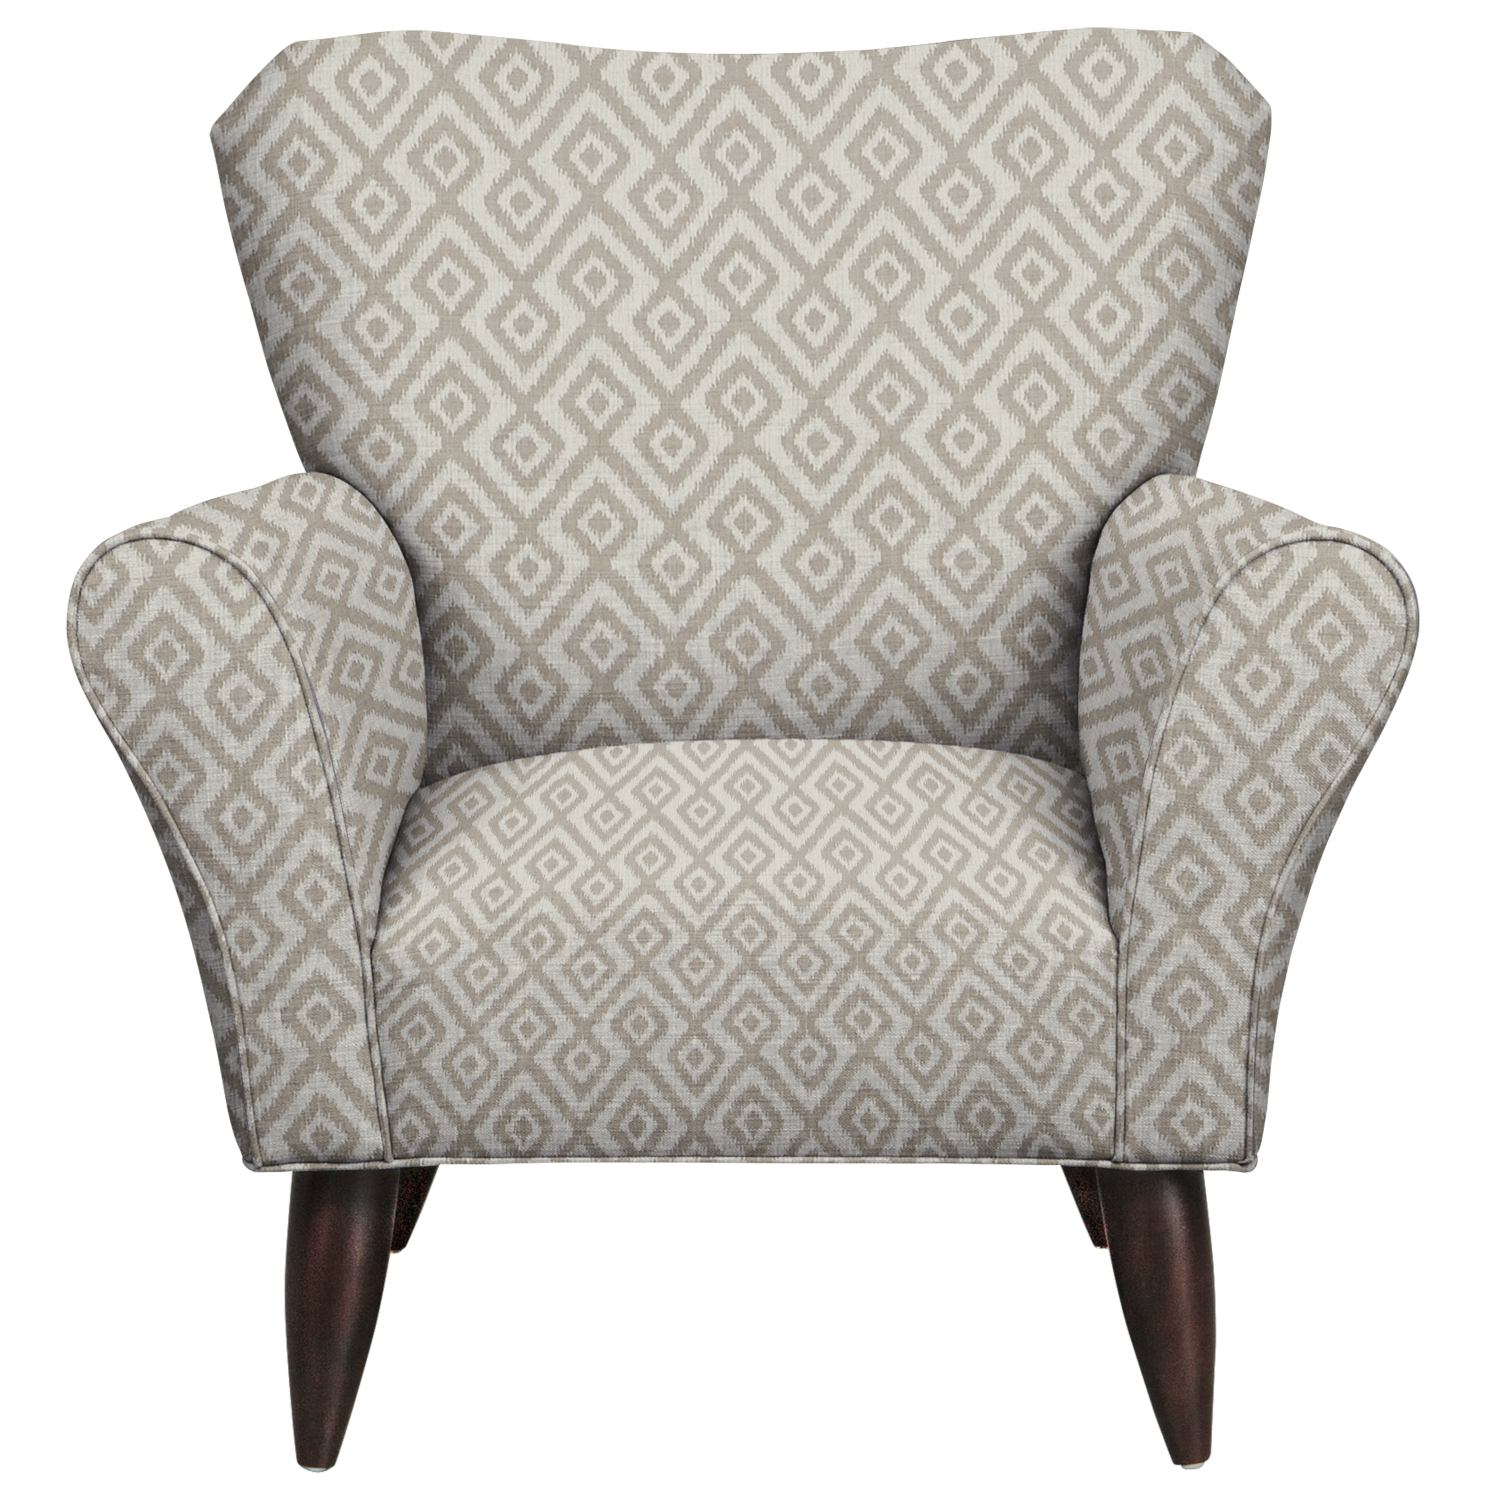 Living Room Furniture - Jessie Chair w/ Tate Dove Fabric